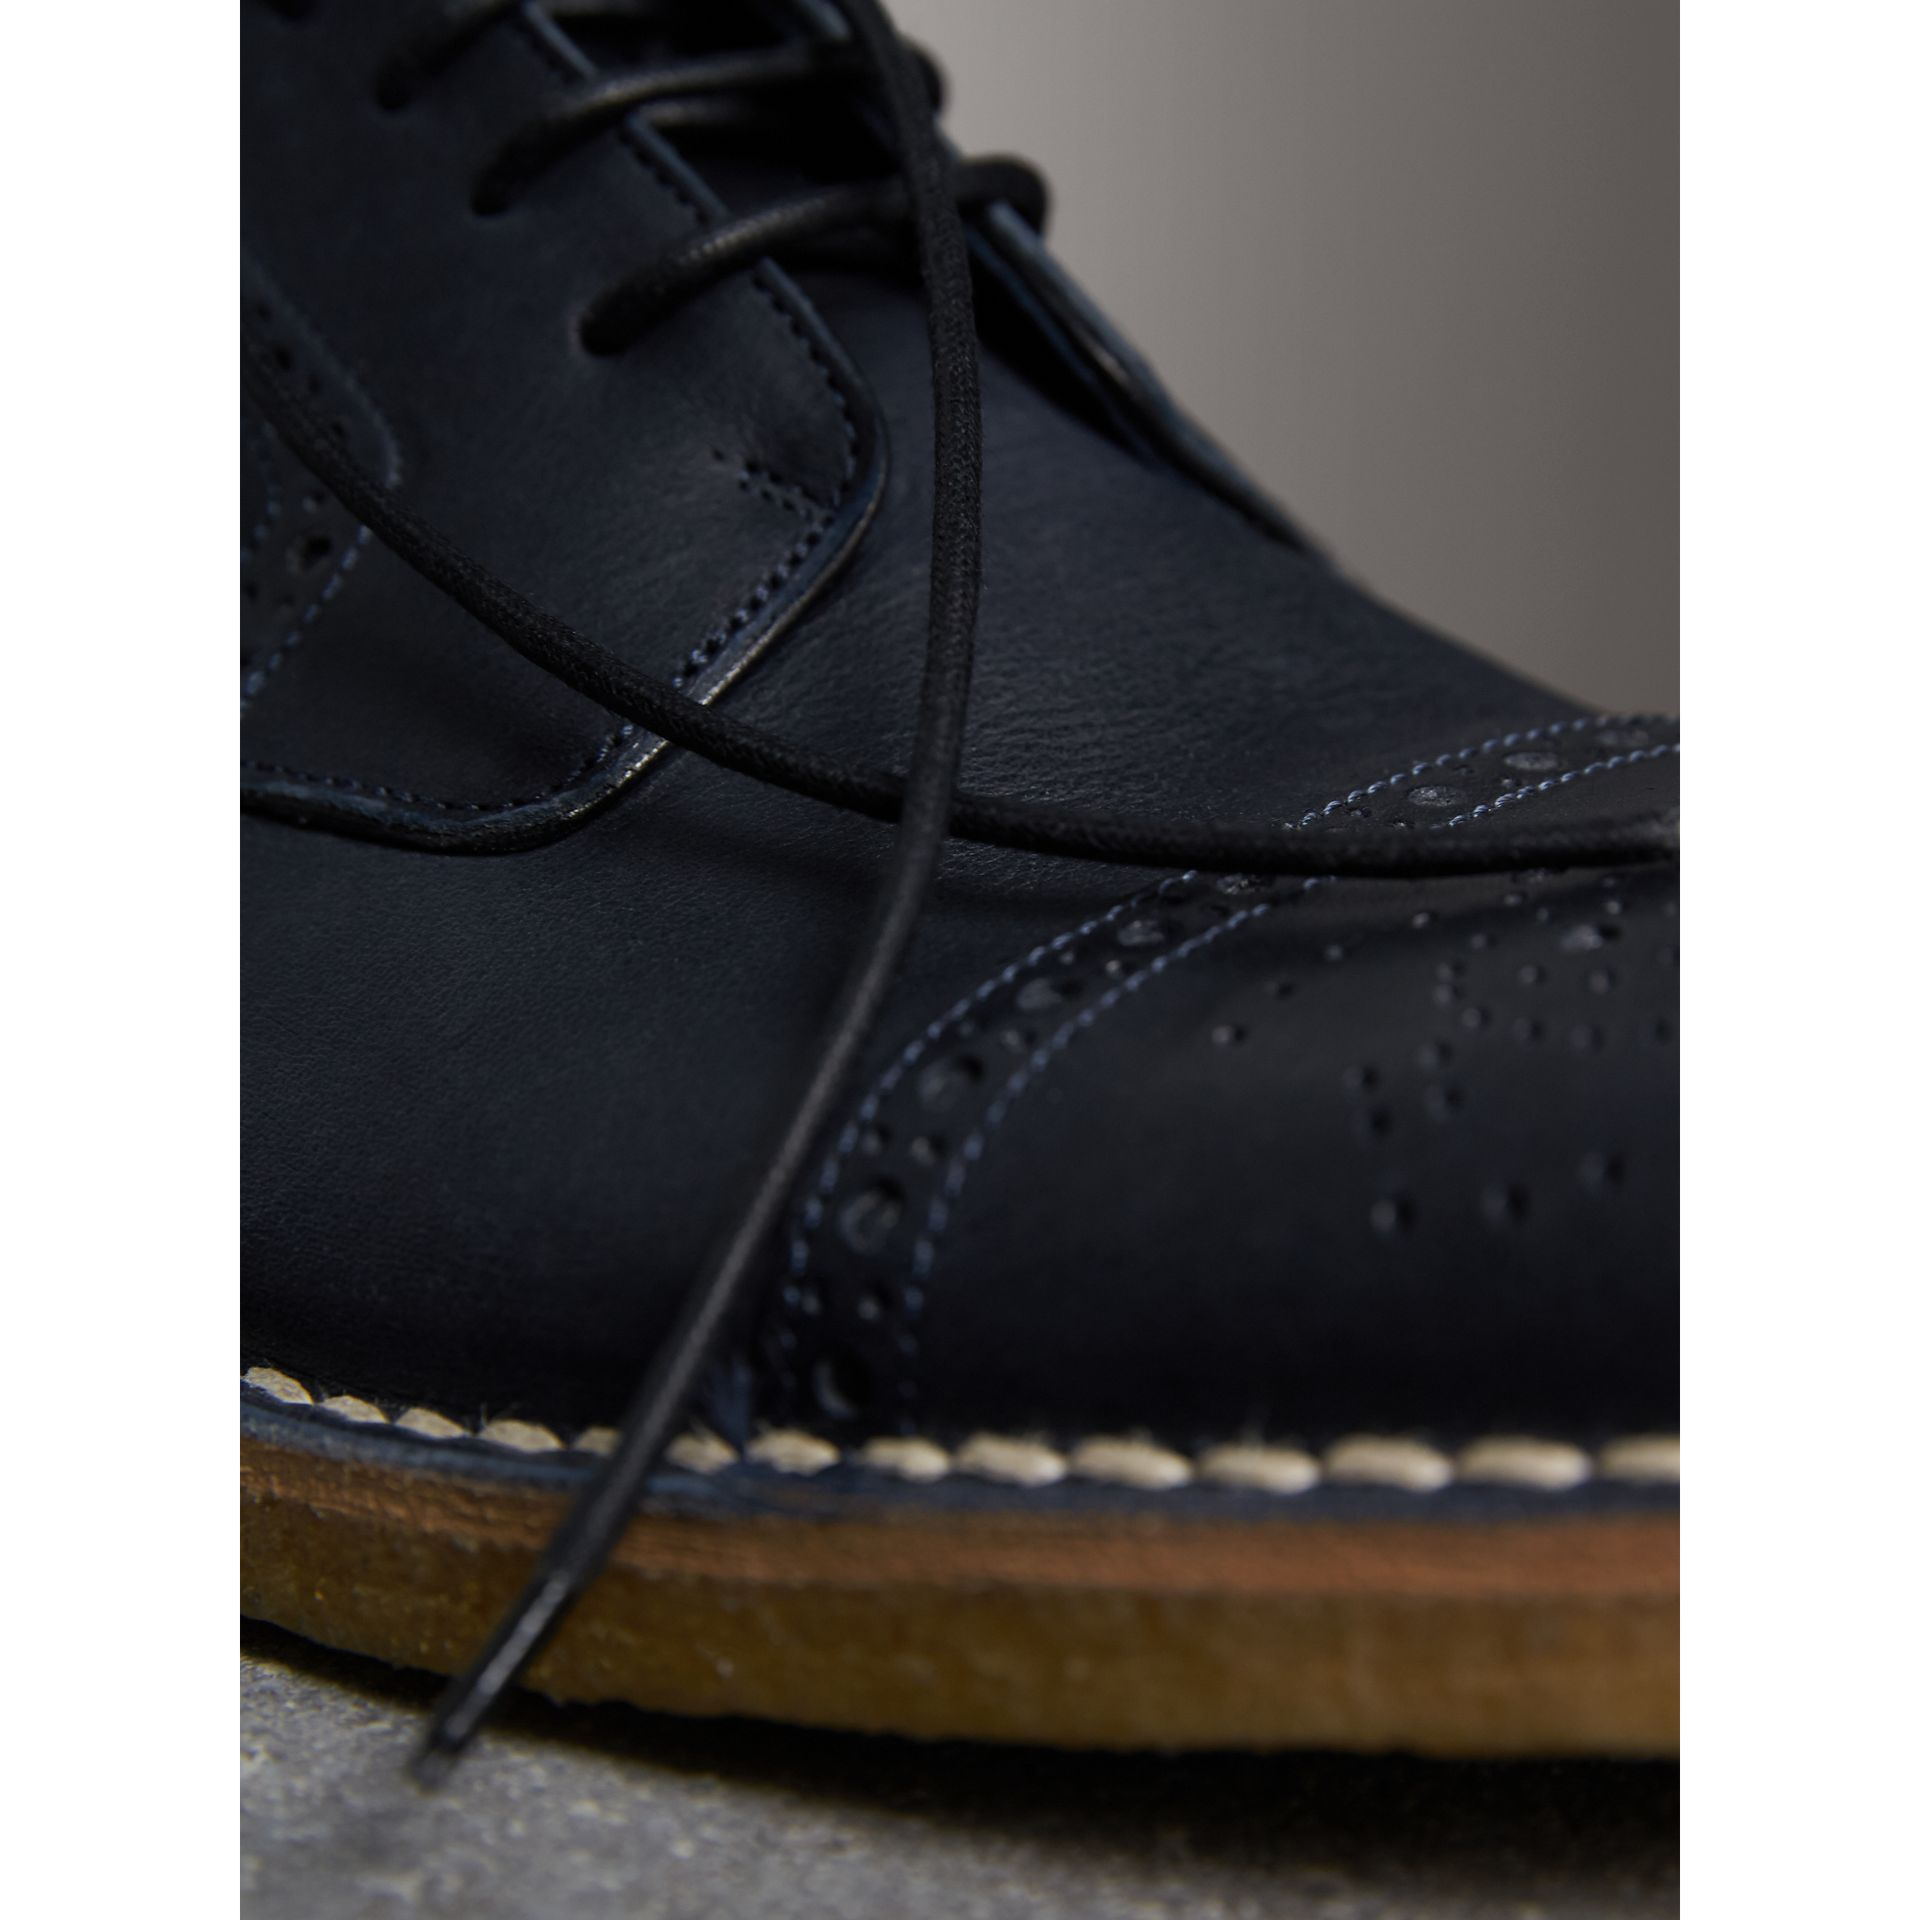 Raised Toe-cap Nappa Leather Brogues in Navy - Men | Burberry - gallery image 2